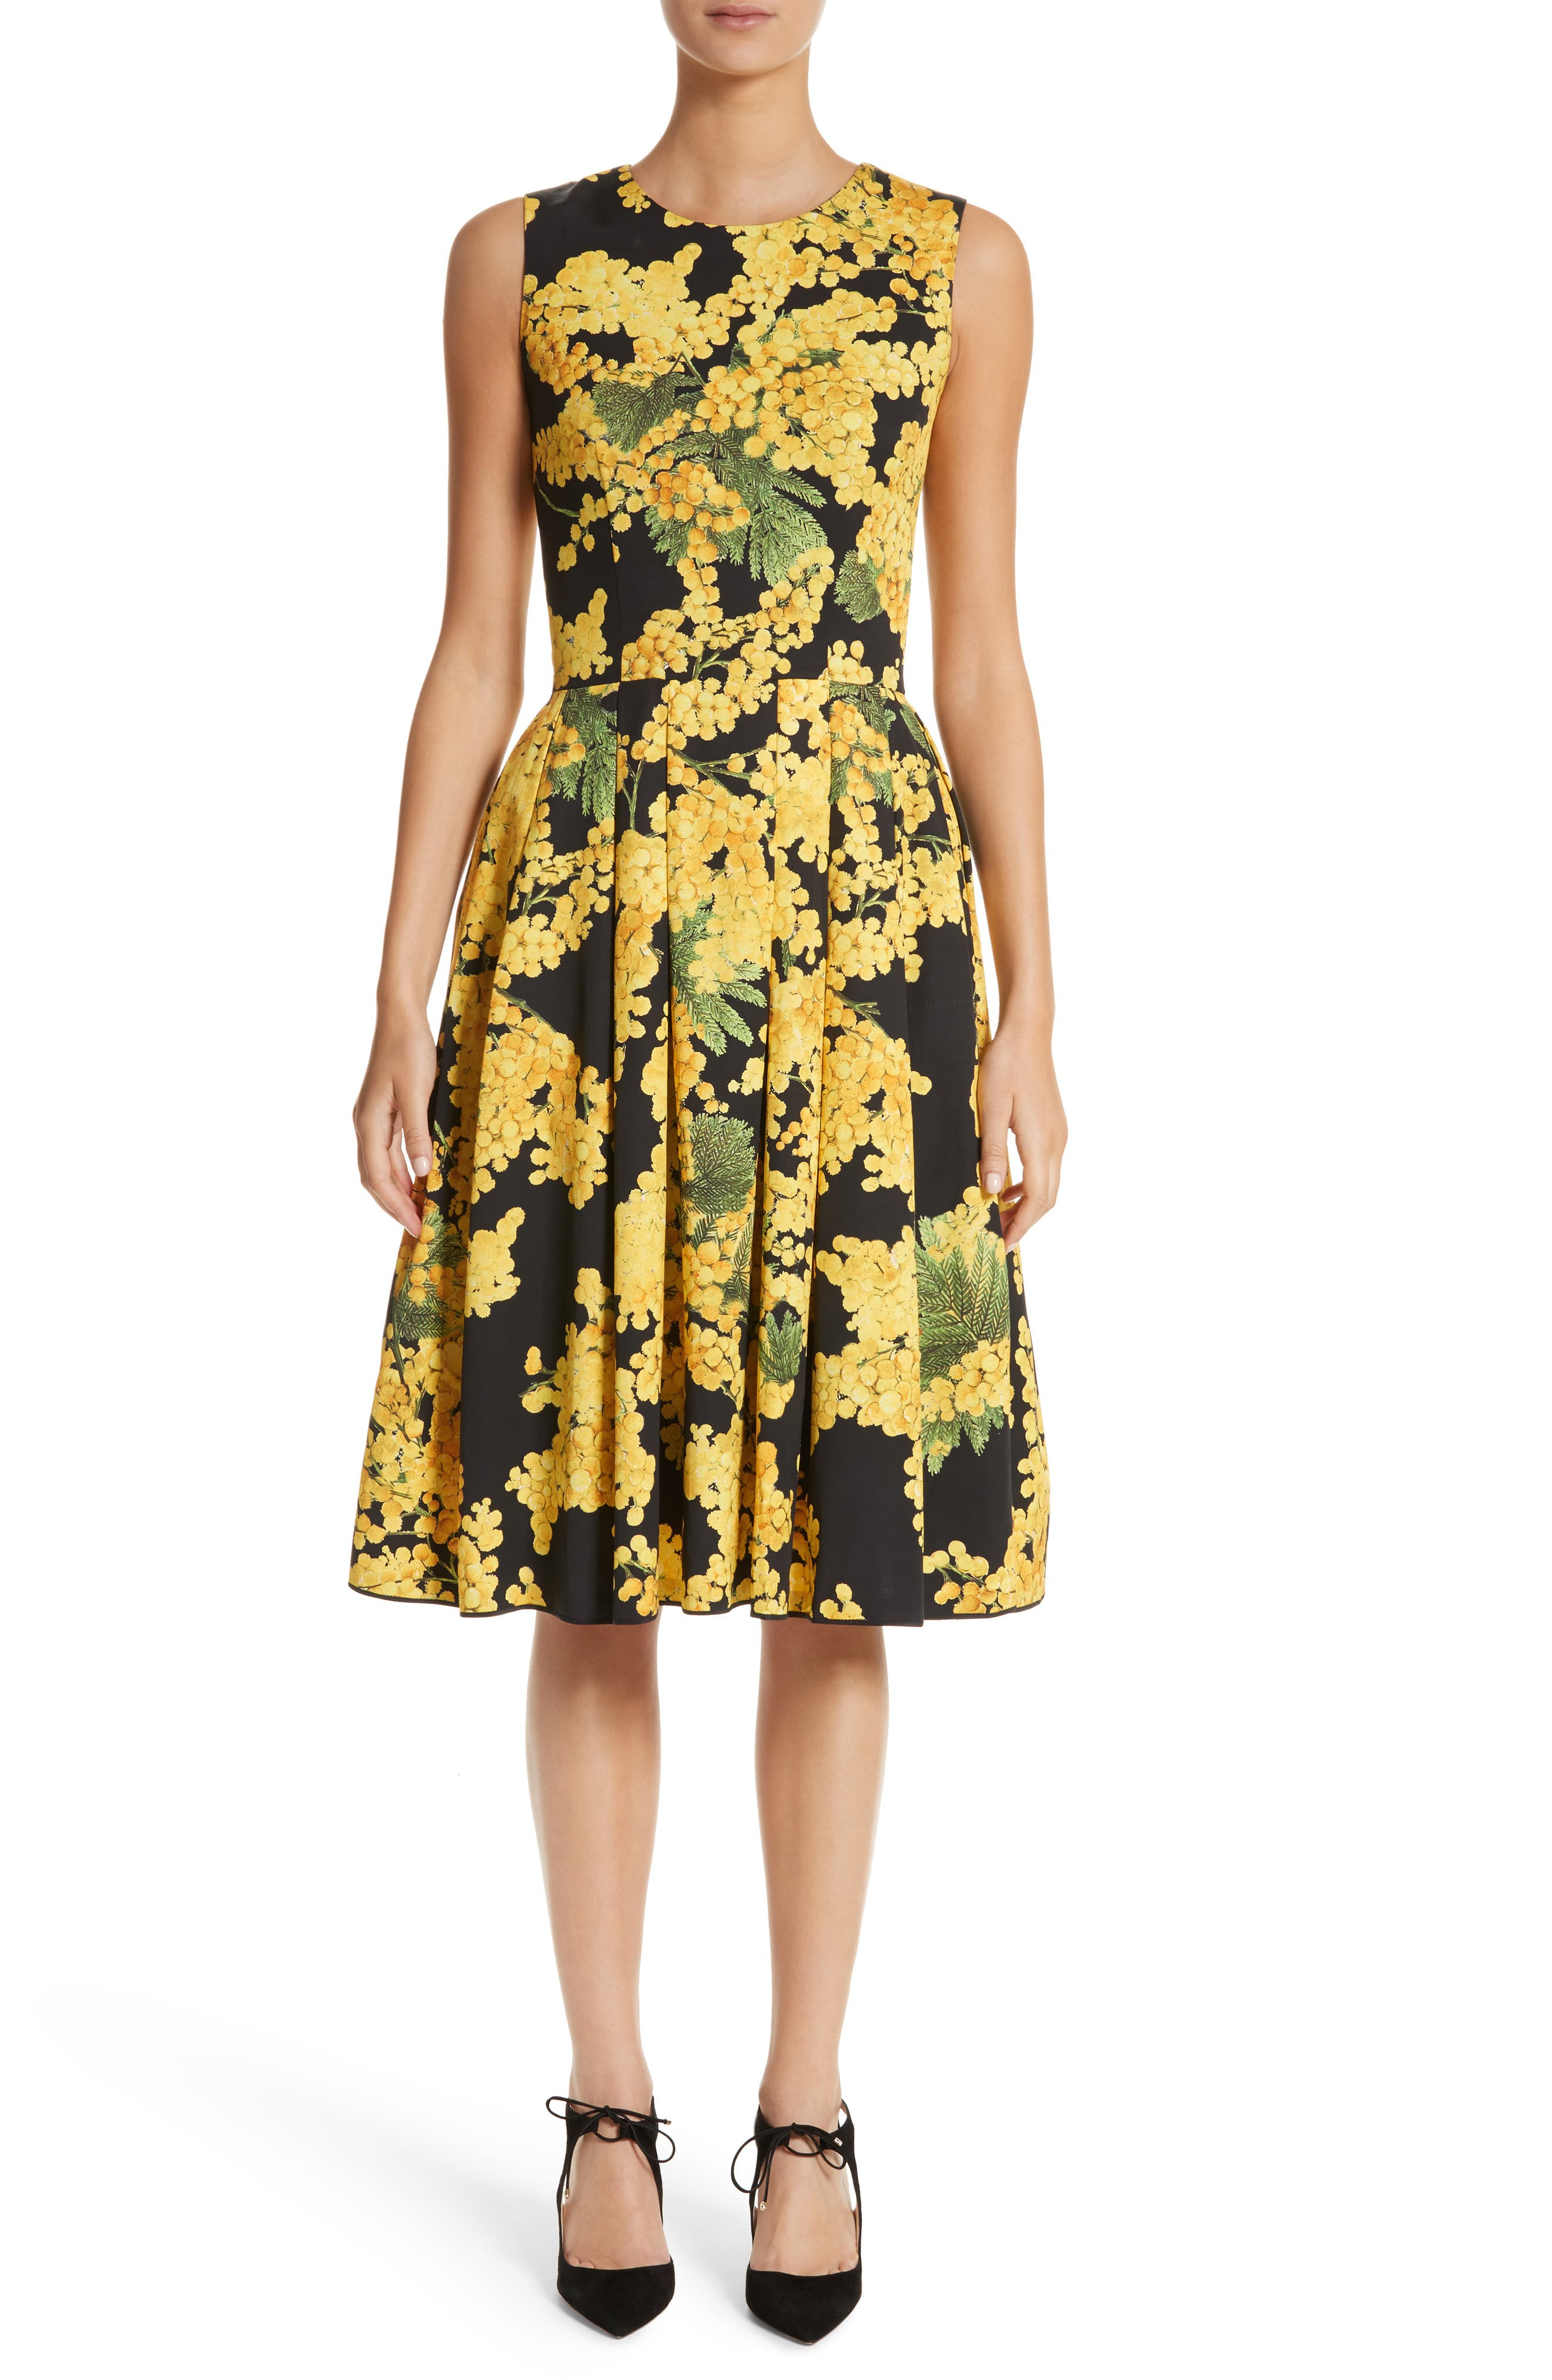 Carolina Herrera Floral Print Faille Day Dress